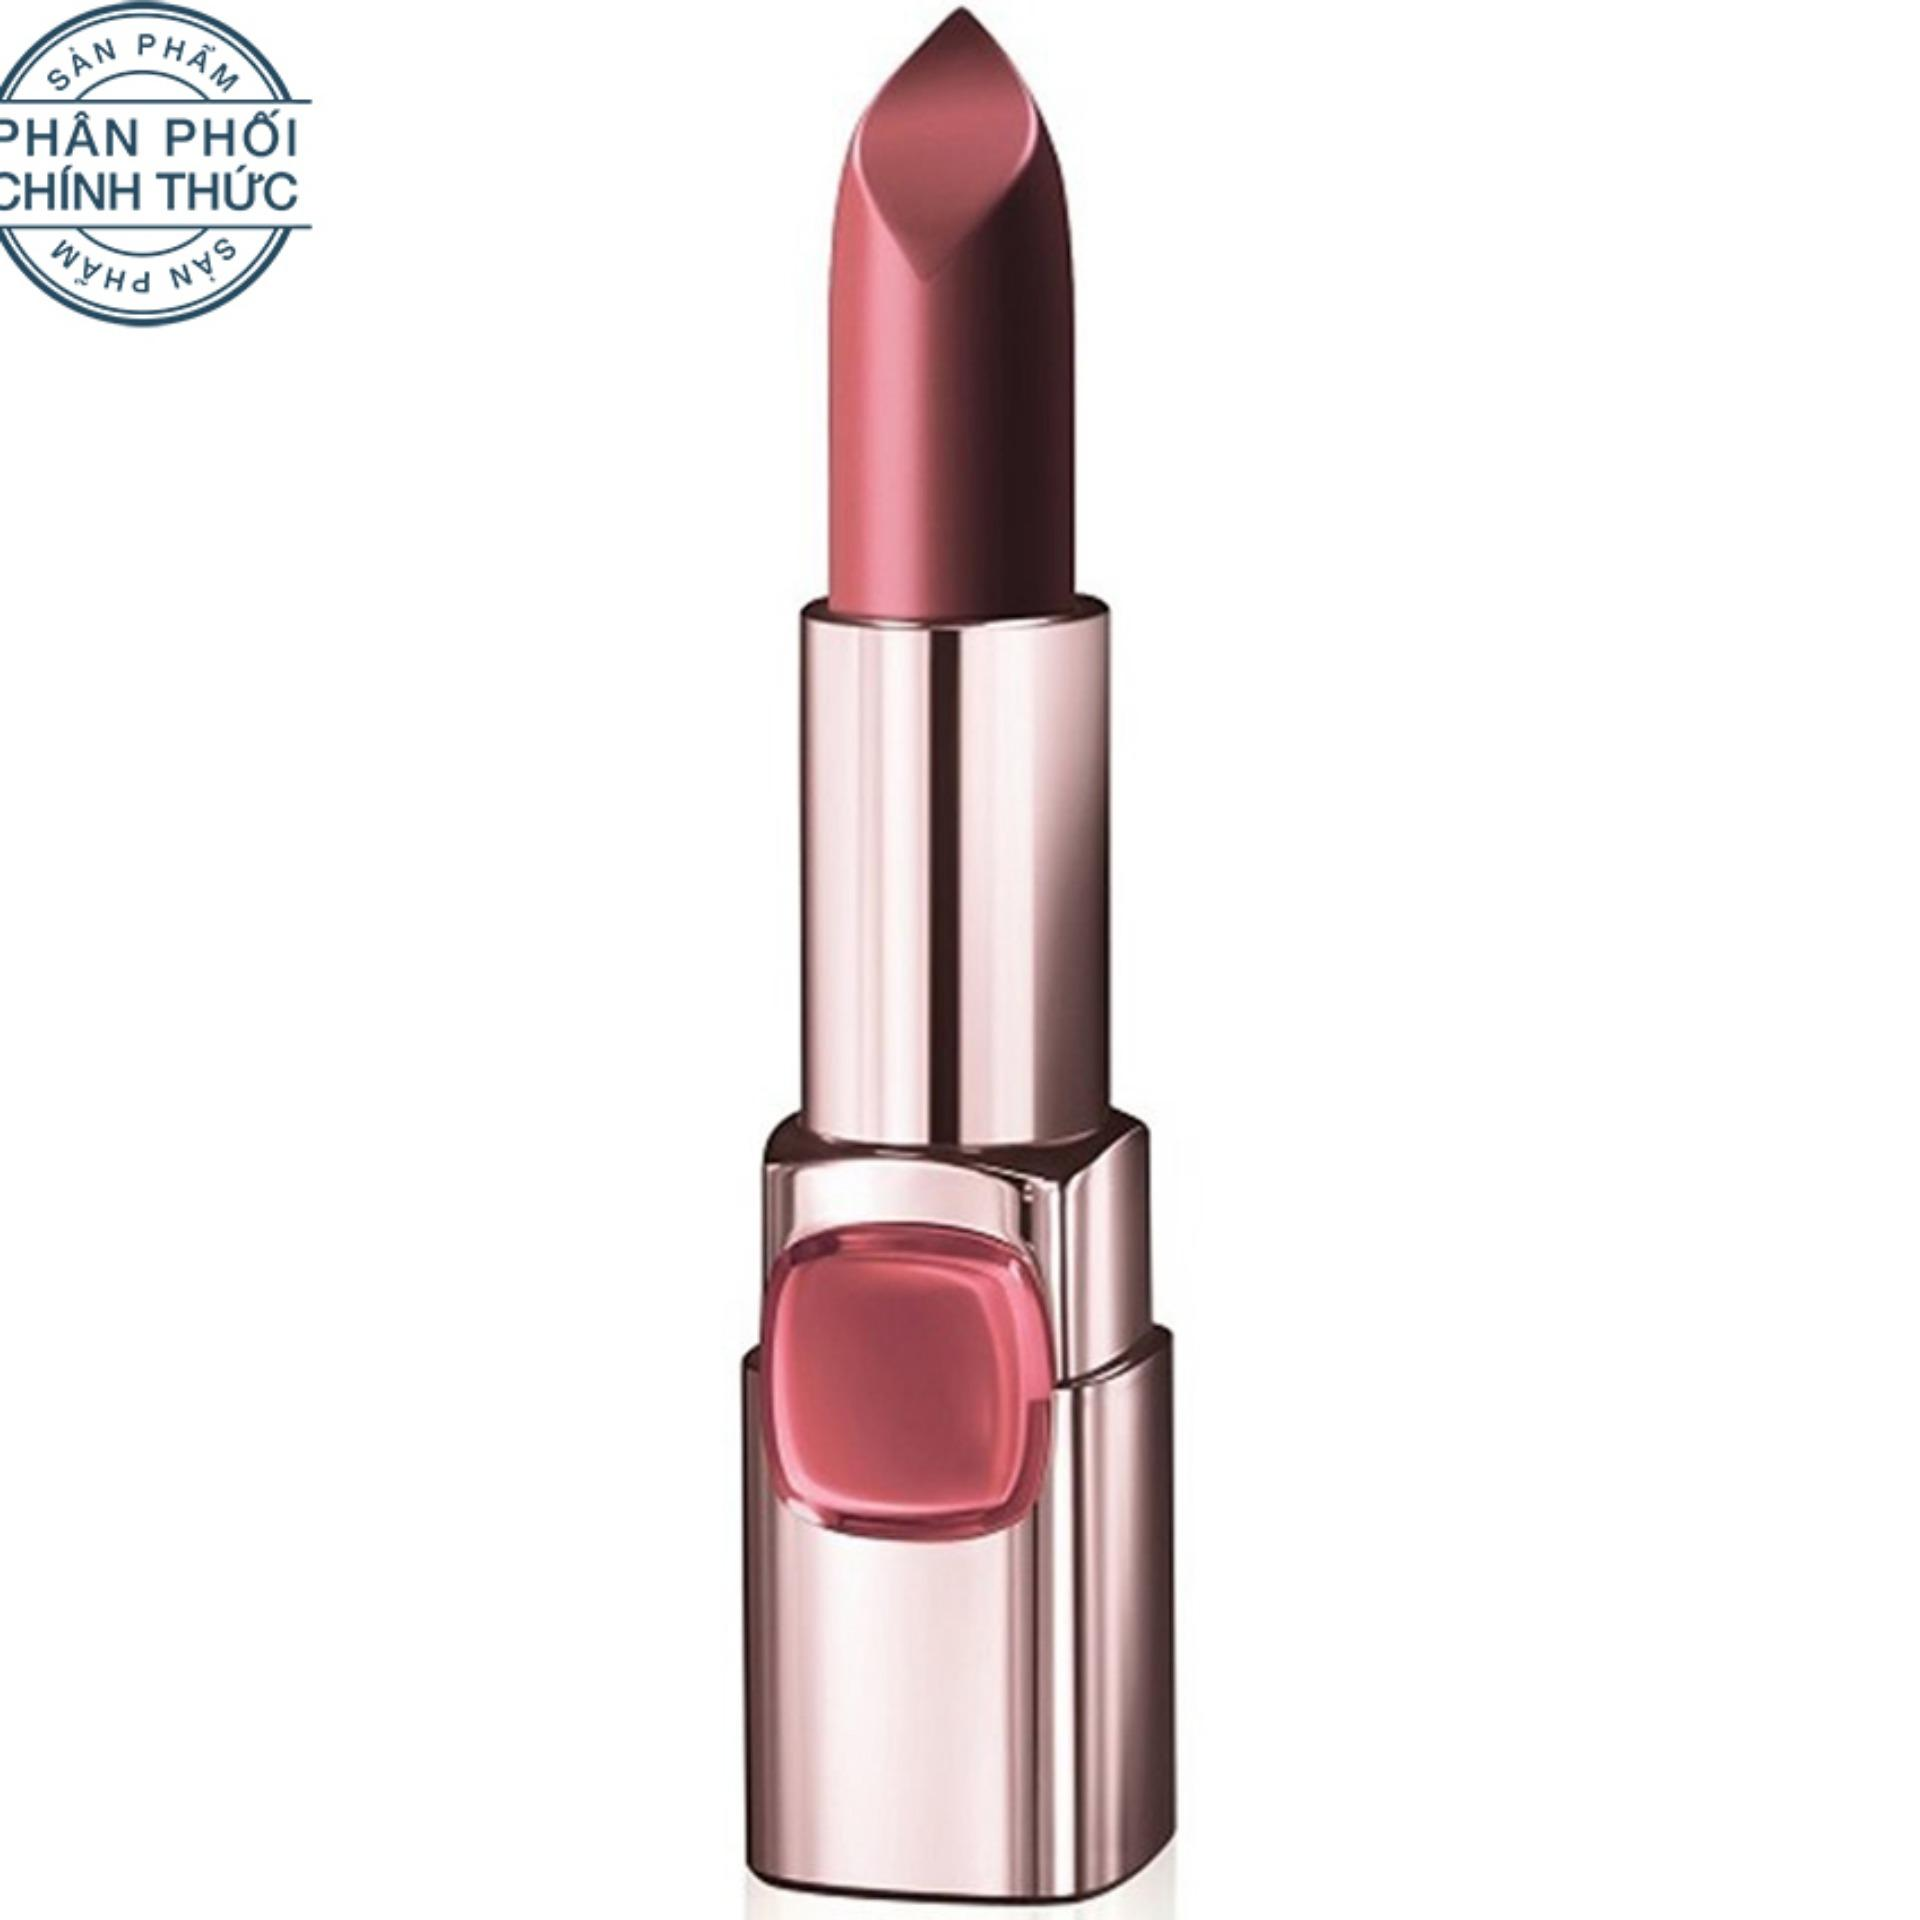 Bán Son Li Mượt Moi L Oreal Paris Color Riche Moist Matte P502 As 4 2G Hồng L Oreal Paris Rẻ